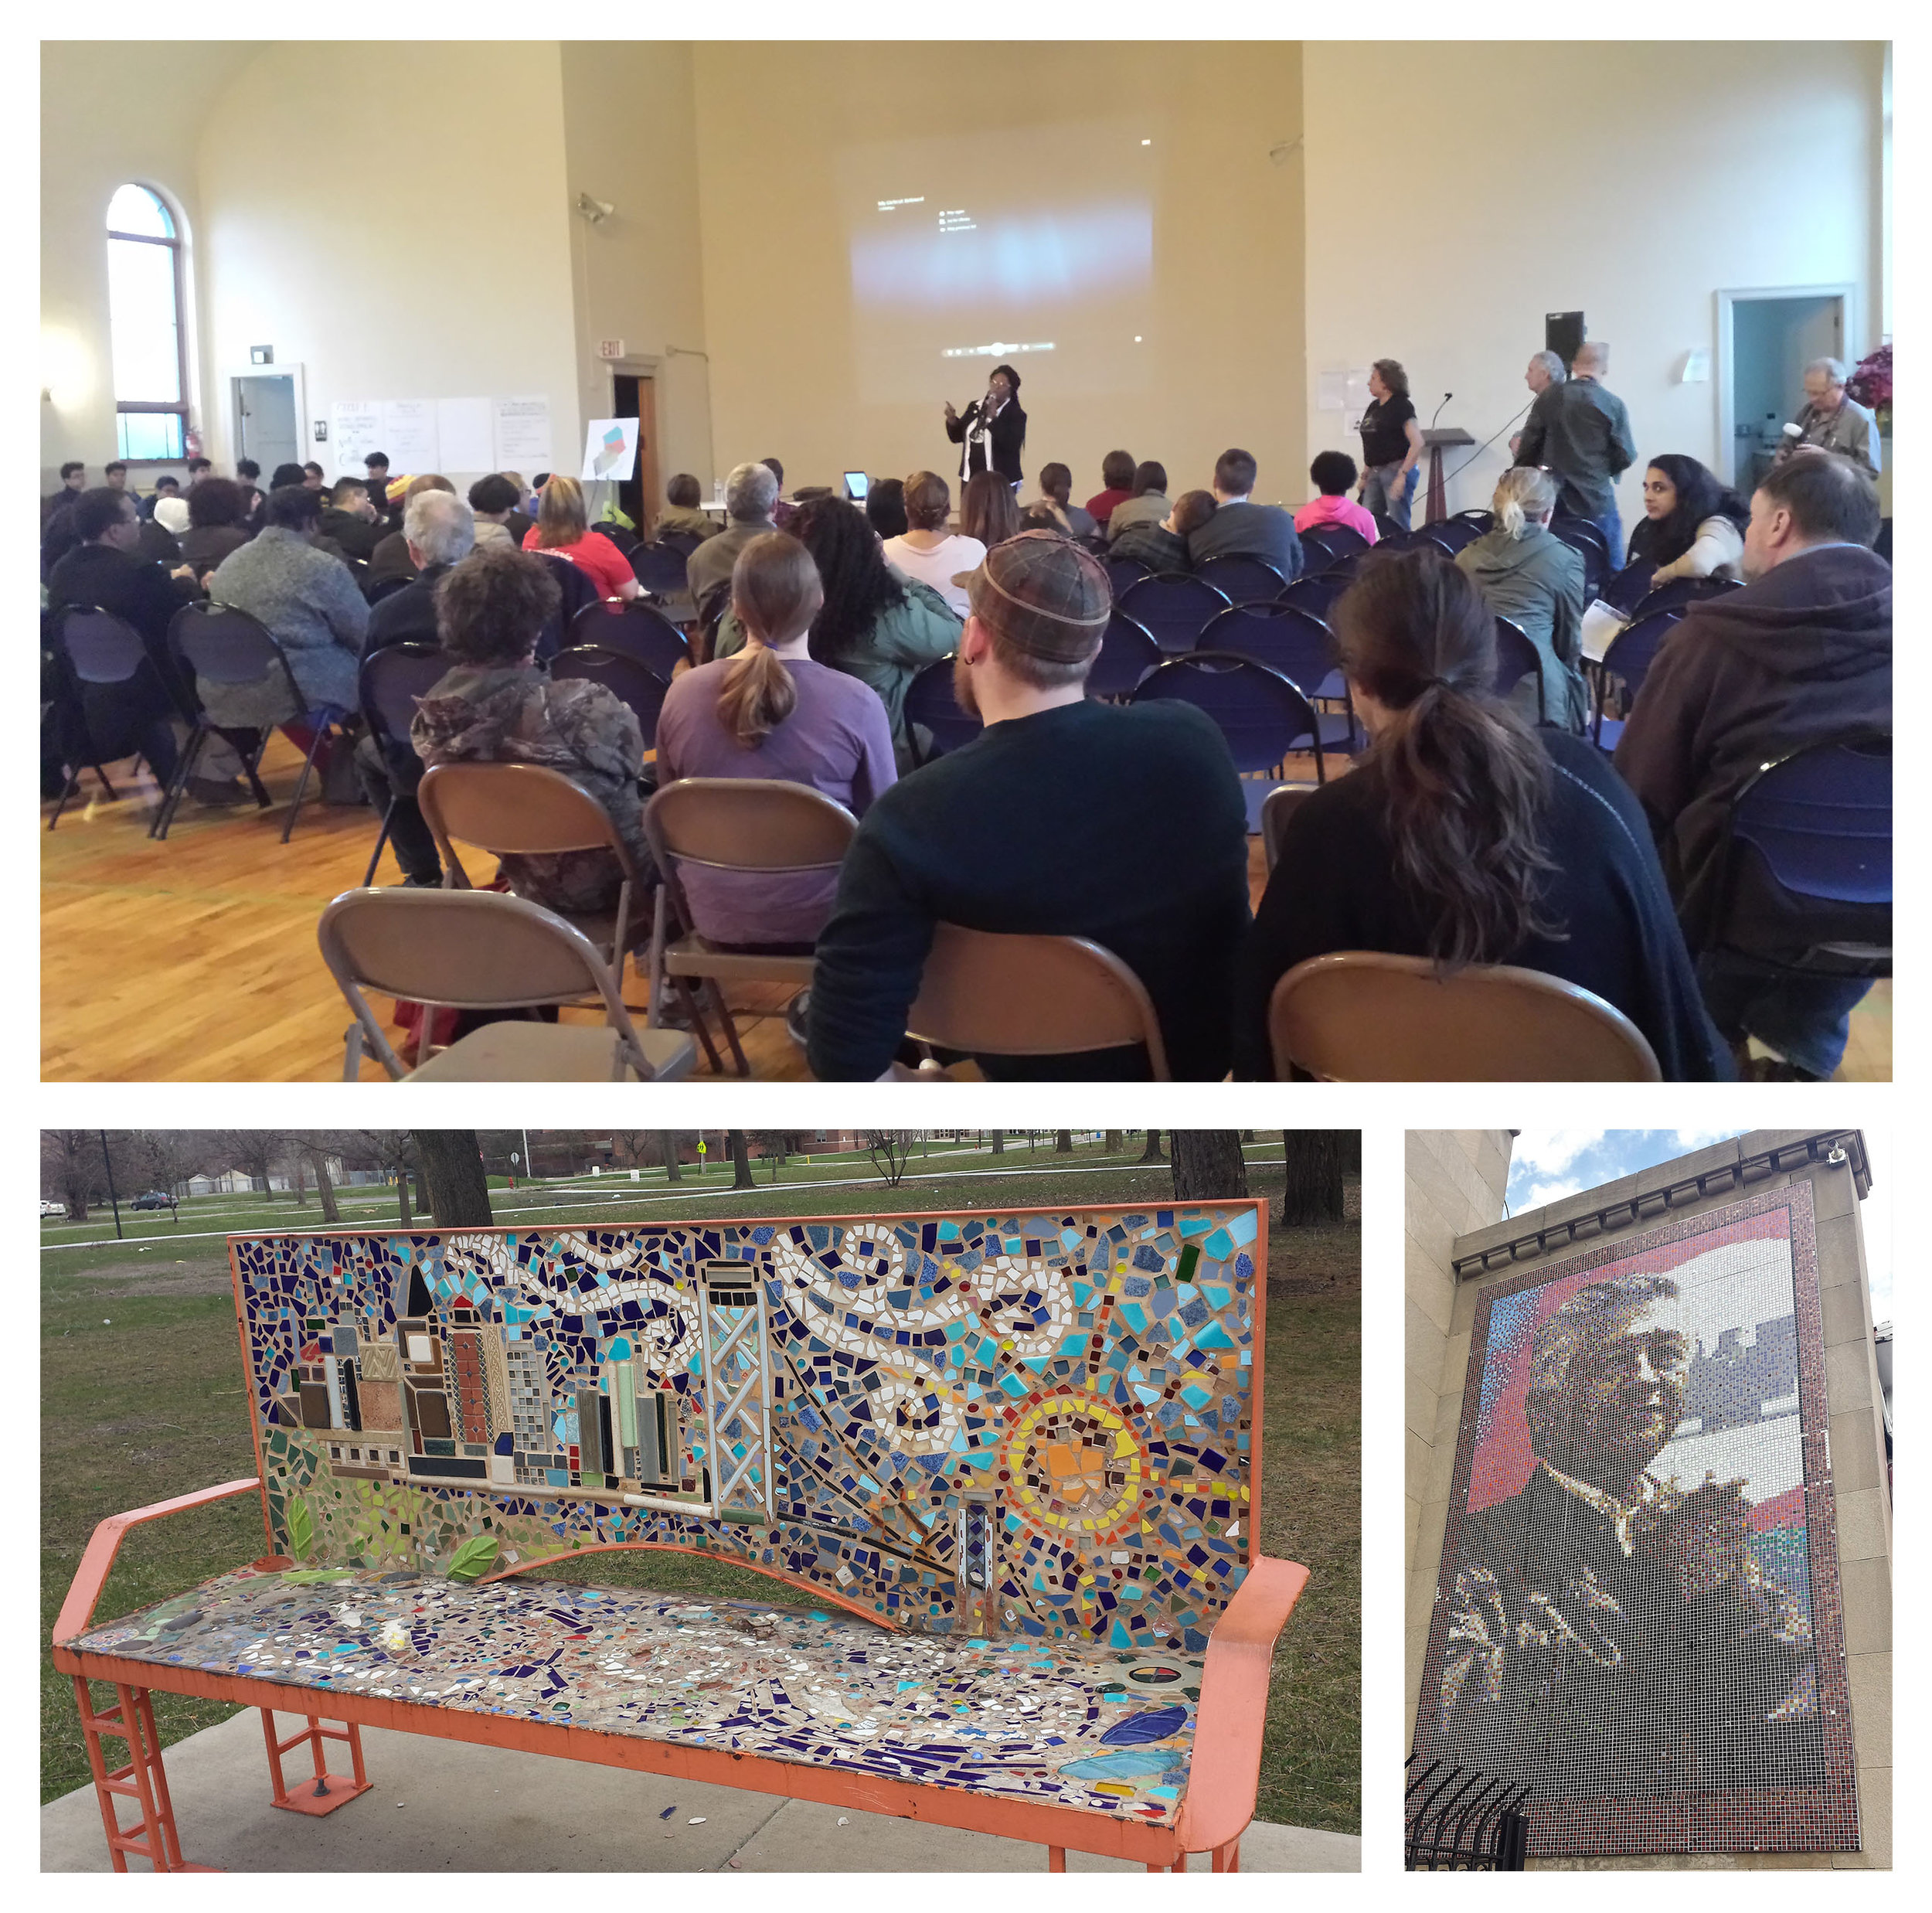 Congress of Communities Meeting, Southwest Detroit and Culturally Specific Urban Art